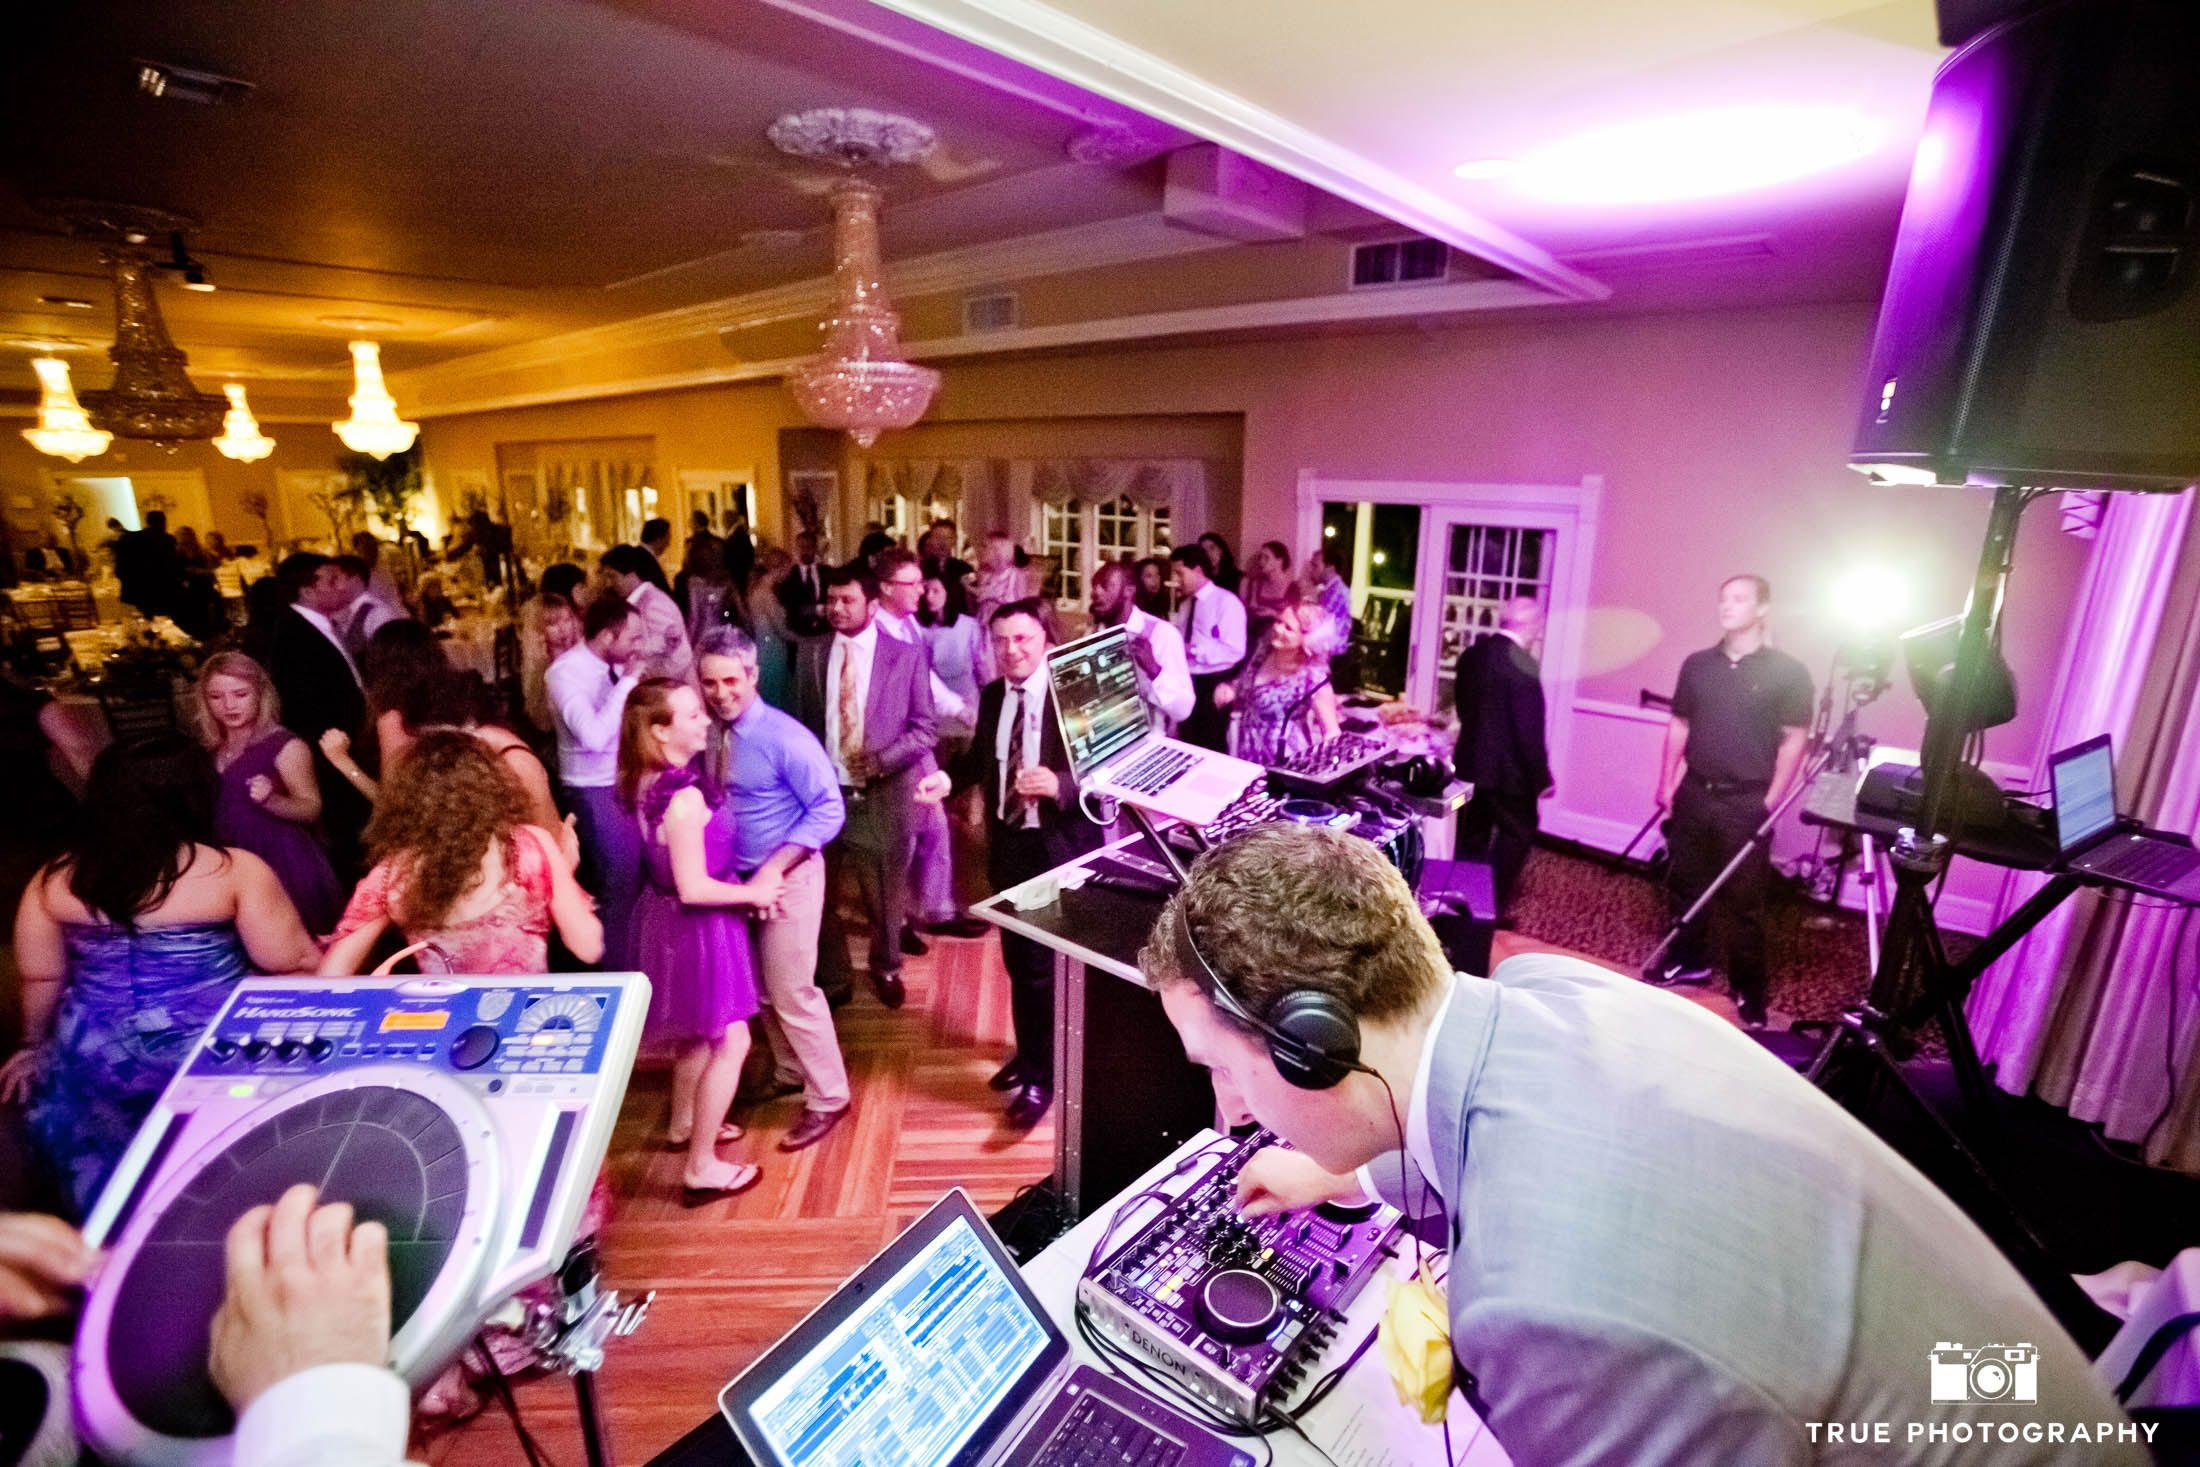 DJ plays music and performs for guests at wedding reception